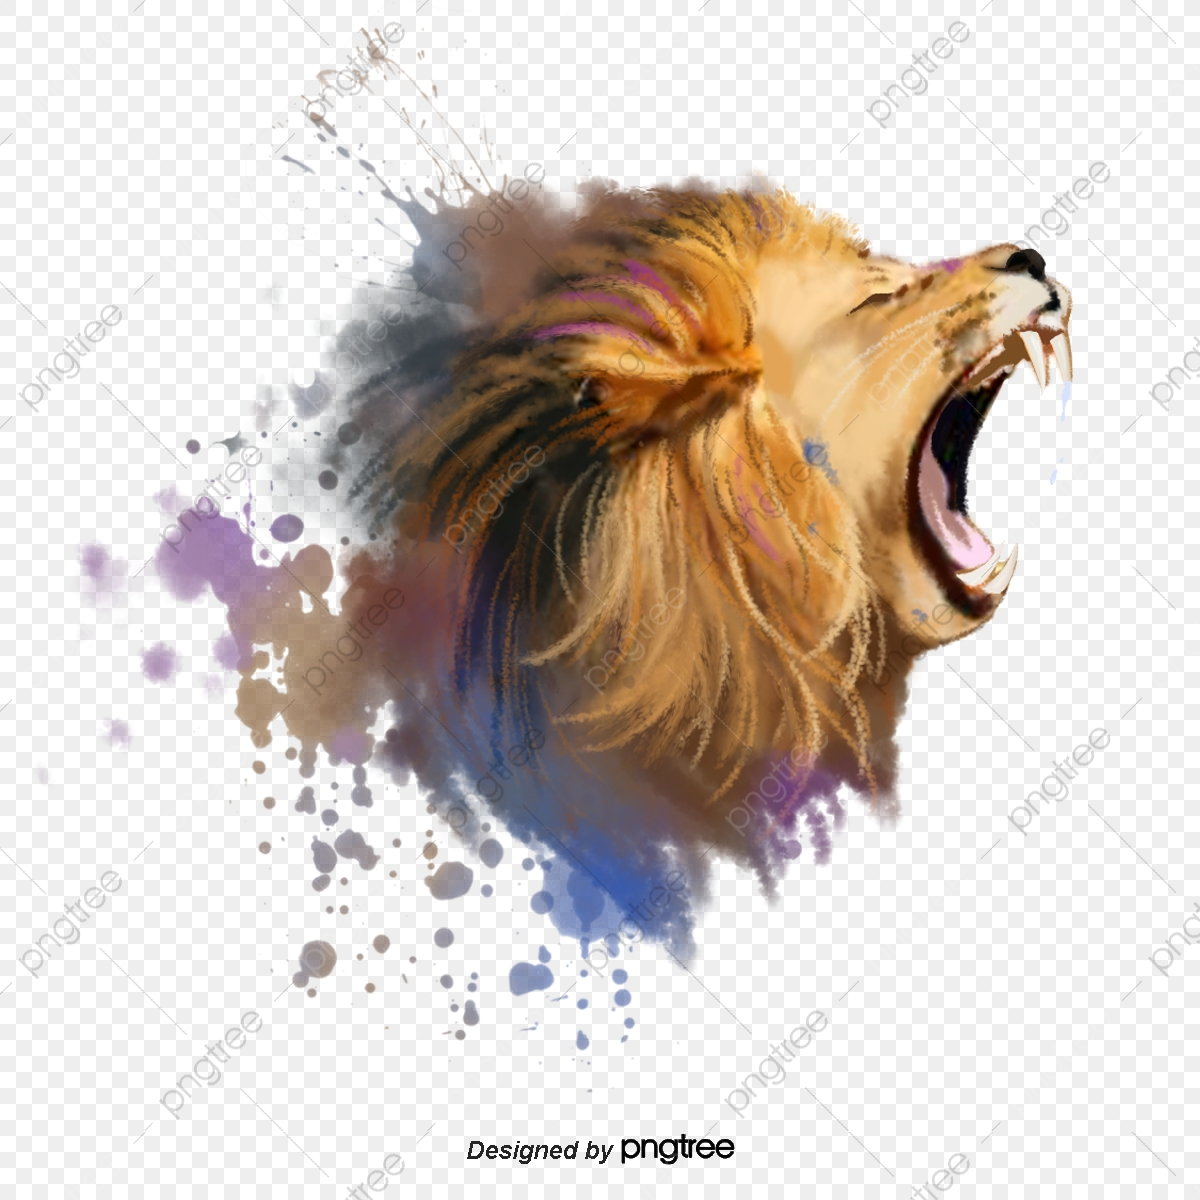 Roar Png Images Vector And Psd Files Free Download On Pngtree There are 22 roaring lion logo for sale on etsy, and they cost $54.90 on average. https pngtree com freepng roaring lion roaring splash elements 4170057 html